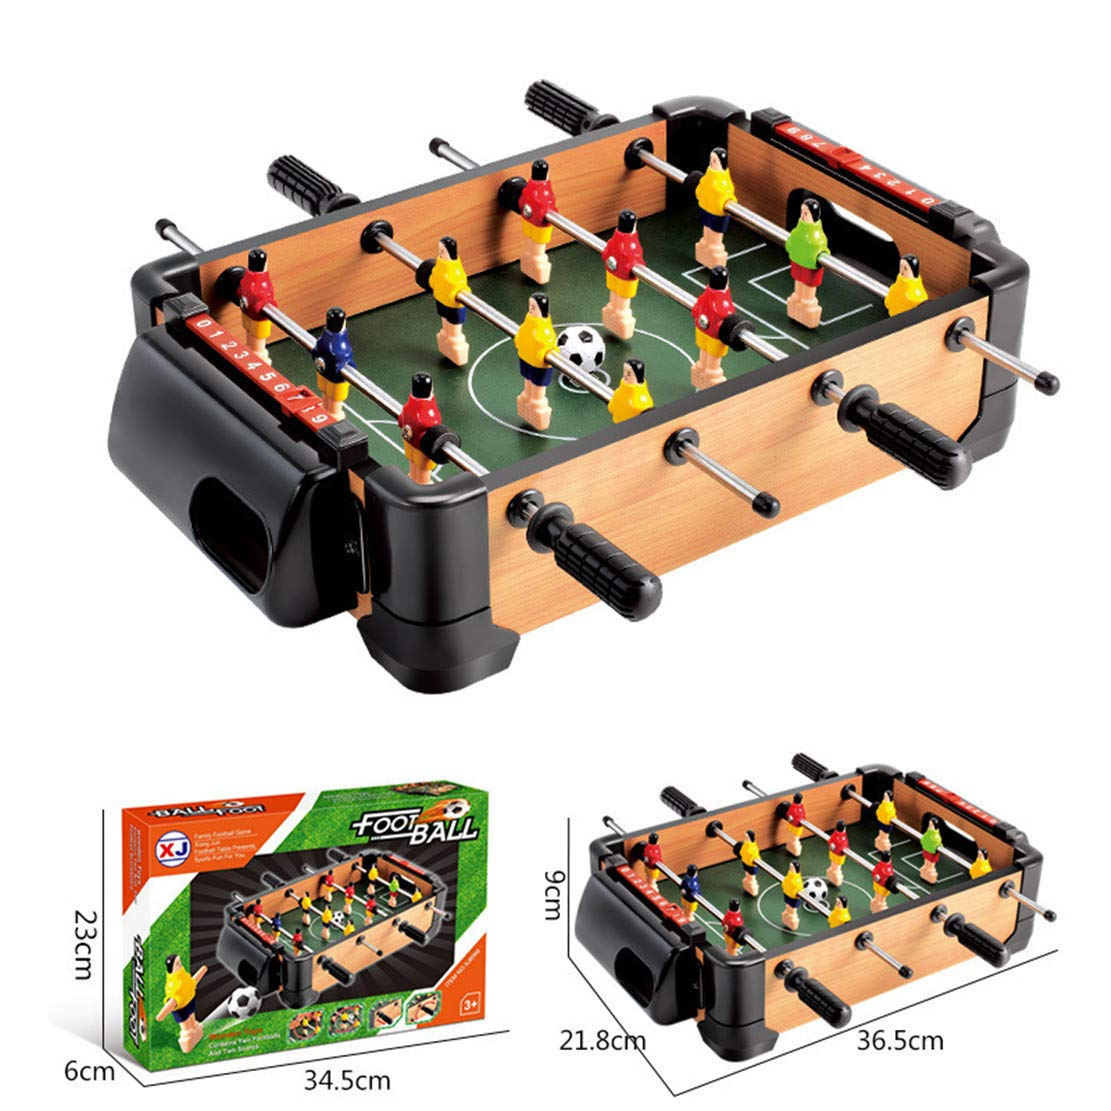 MSTQ Large Football Table Wooden Indoor Soccer Table 6 Football Table Double Battle Desktop Board Game Children Sports Toys 9 Models (6066, L) by MSTQ